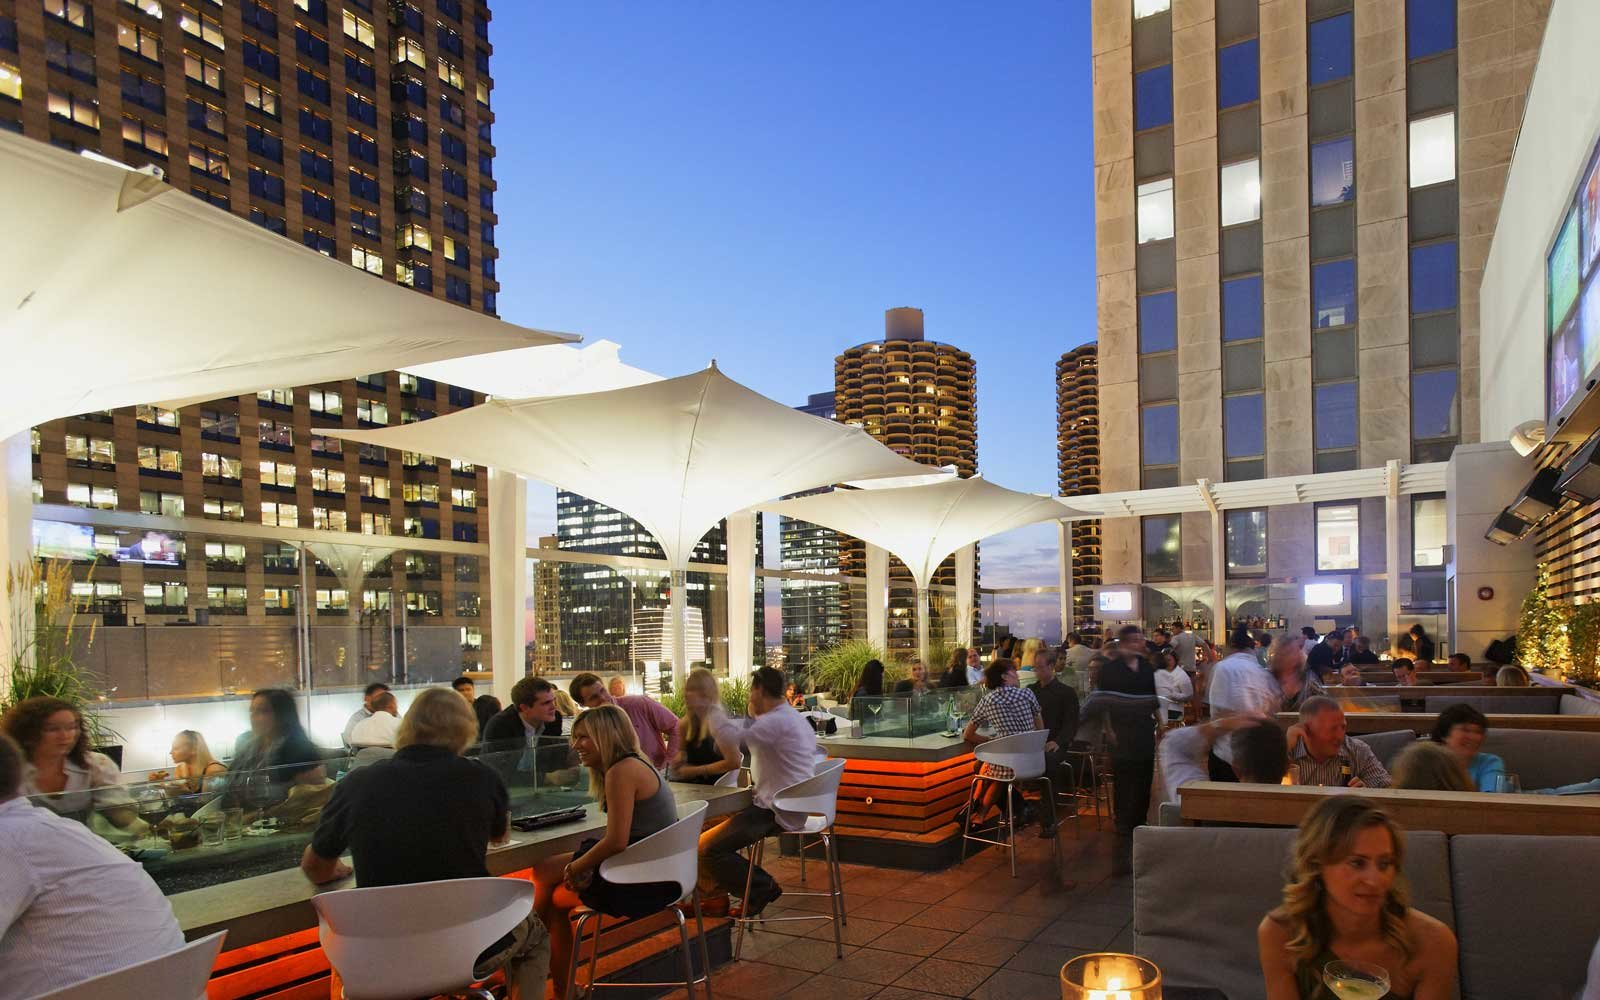 Rooftop Bars in Chicago